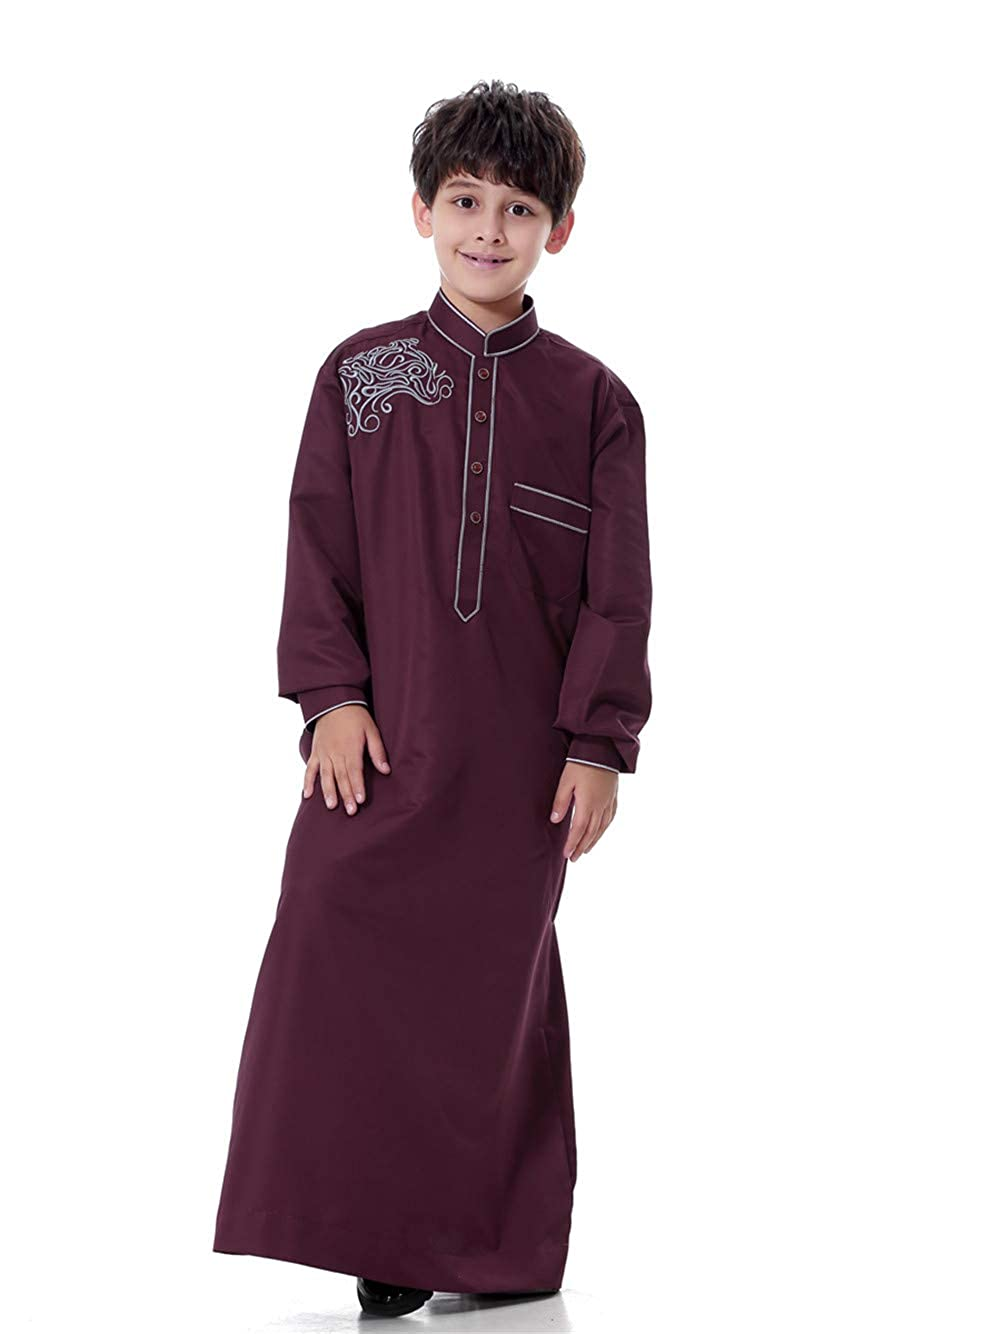 Fortunings JDS Boys Embroidery Thobe Long Sleeves Mandarin Neck Muslim Robe